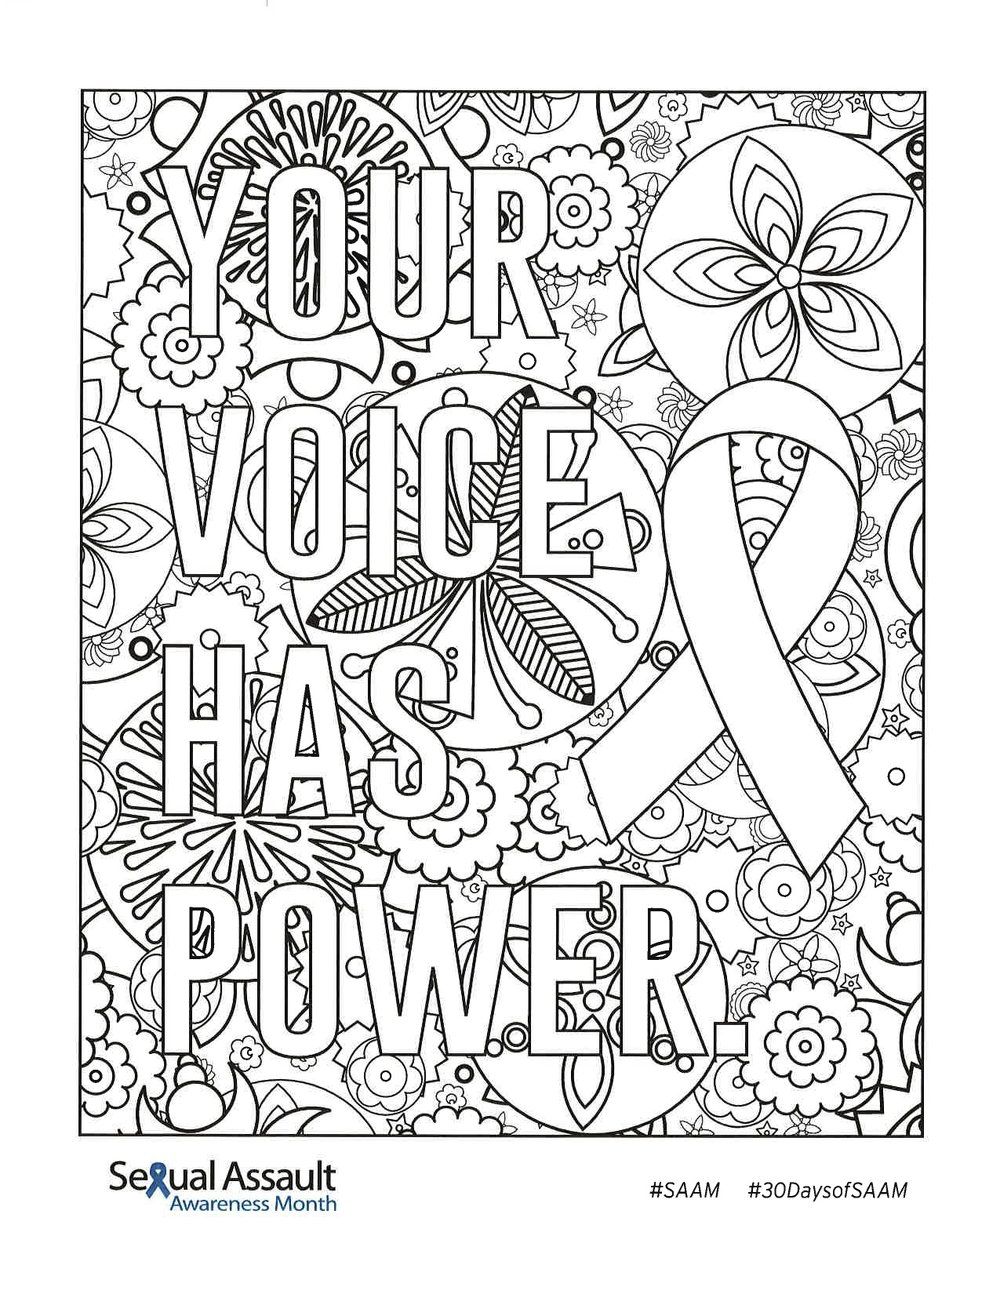 "Sexual Assault Awareness Month Coloring Contest - Individuals from the area participated in an online coloring contest through Facebook. Once submissions closed, all of the entries were posted to our DVAC Facebook page for voting. Each ""like"" counted as a vote. The entry with the most likes won!"